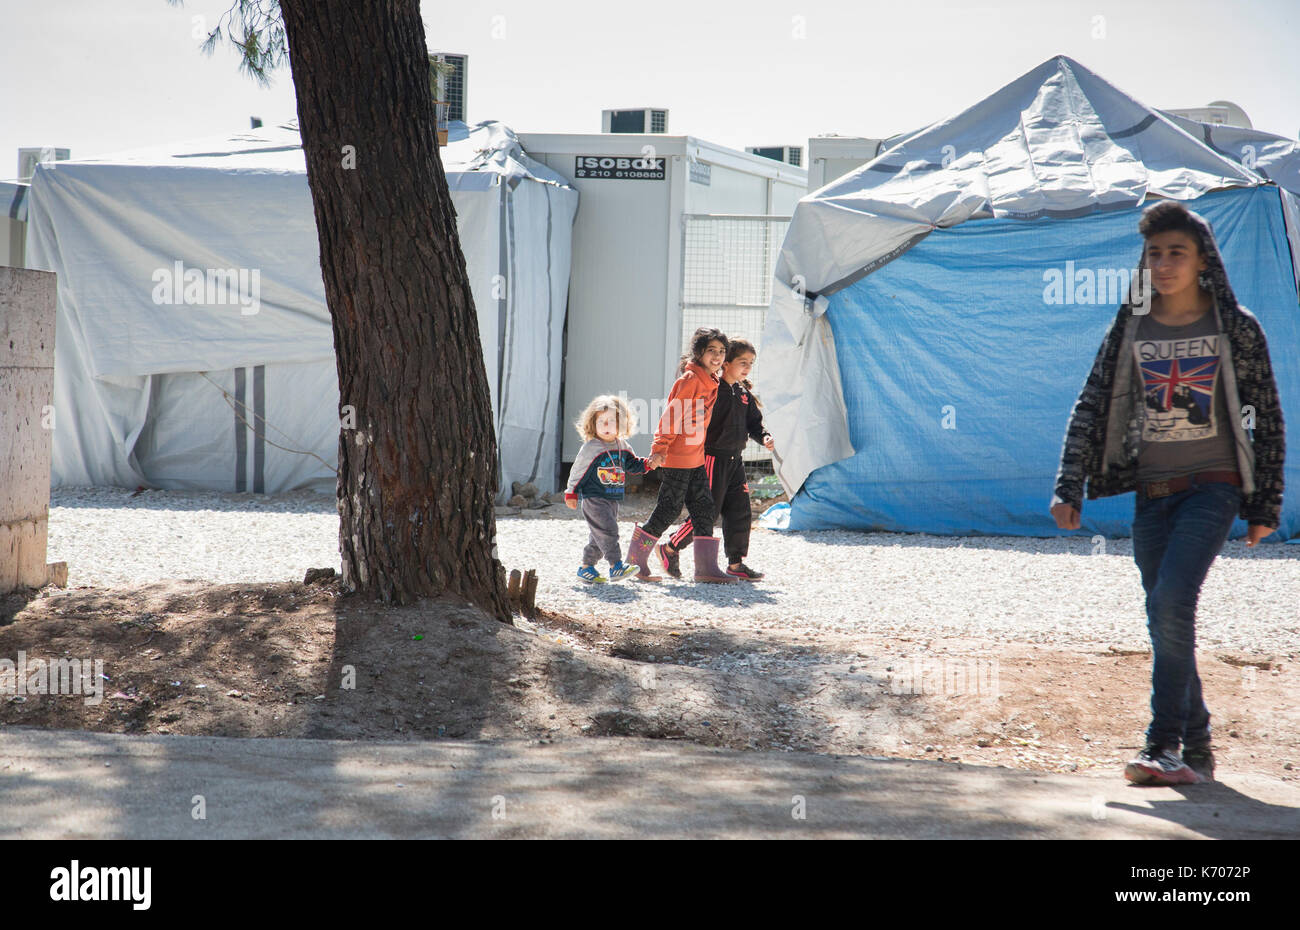 Young children walk confidently within the Ritsona Refugee Camp - Stock Image